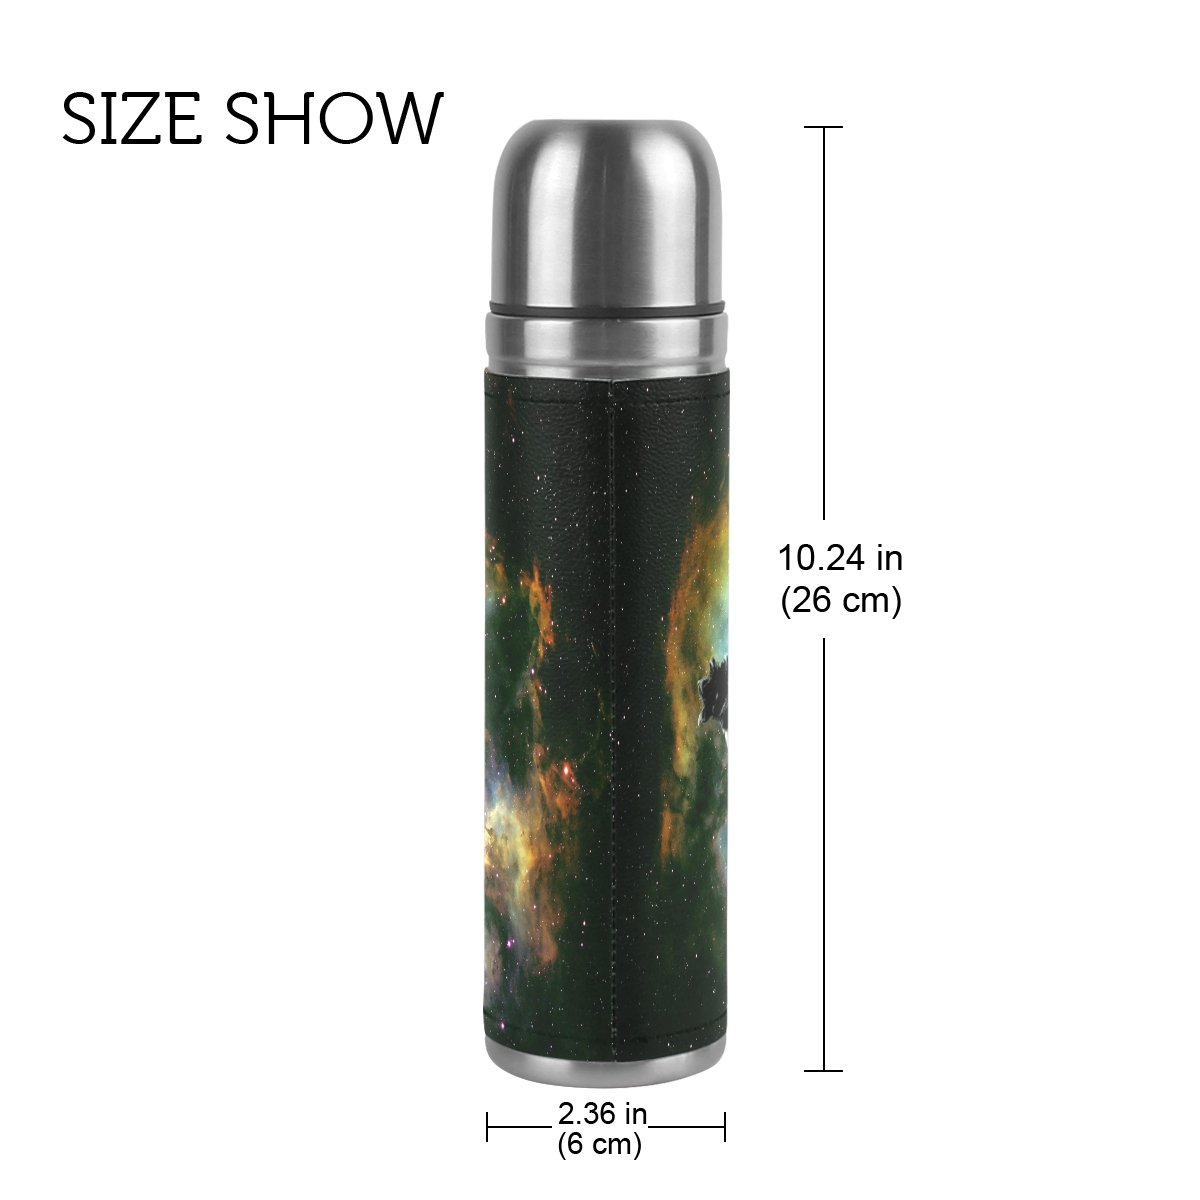 QQMARKET Galaxy Cat Double Wall Vacuum Cup Insulated Stainless Steel PU Leather Travel Mug Bottle, Animal In Space Christmas Birthday Gifts for Mom Dad Boys Girls Kids Lover Friends by QQMARKET (Image #2)